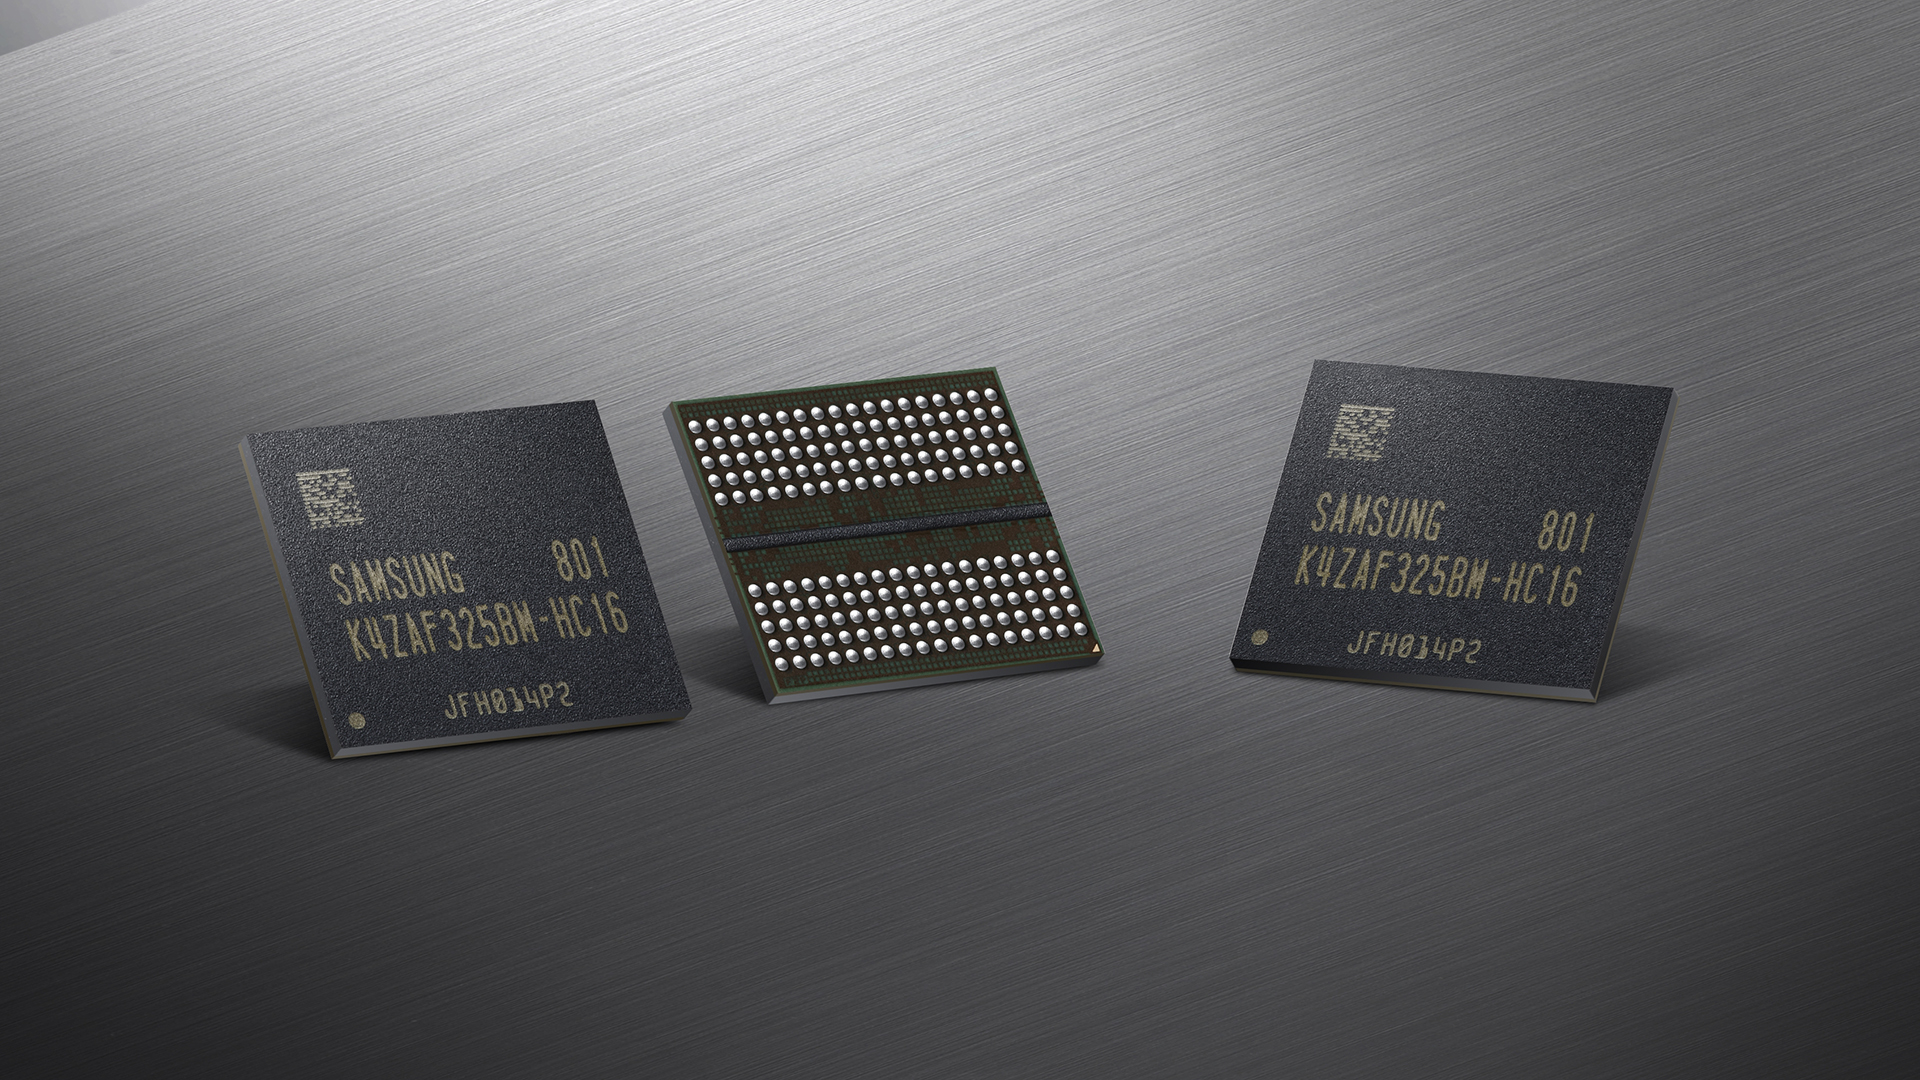 Nvidia GPUs get Micron, Samsung, and Hynix memory for